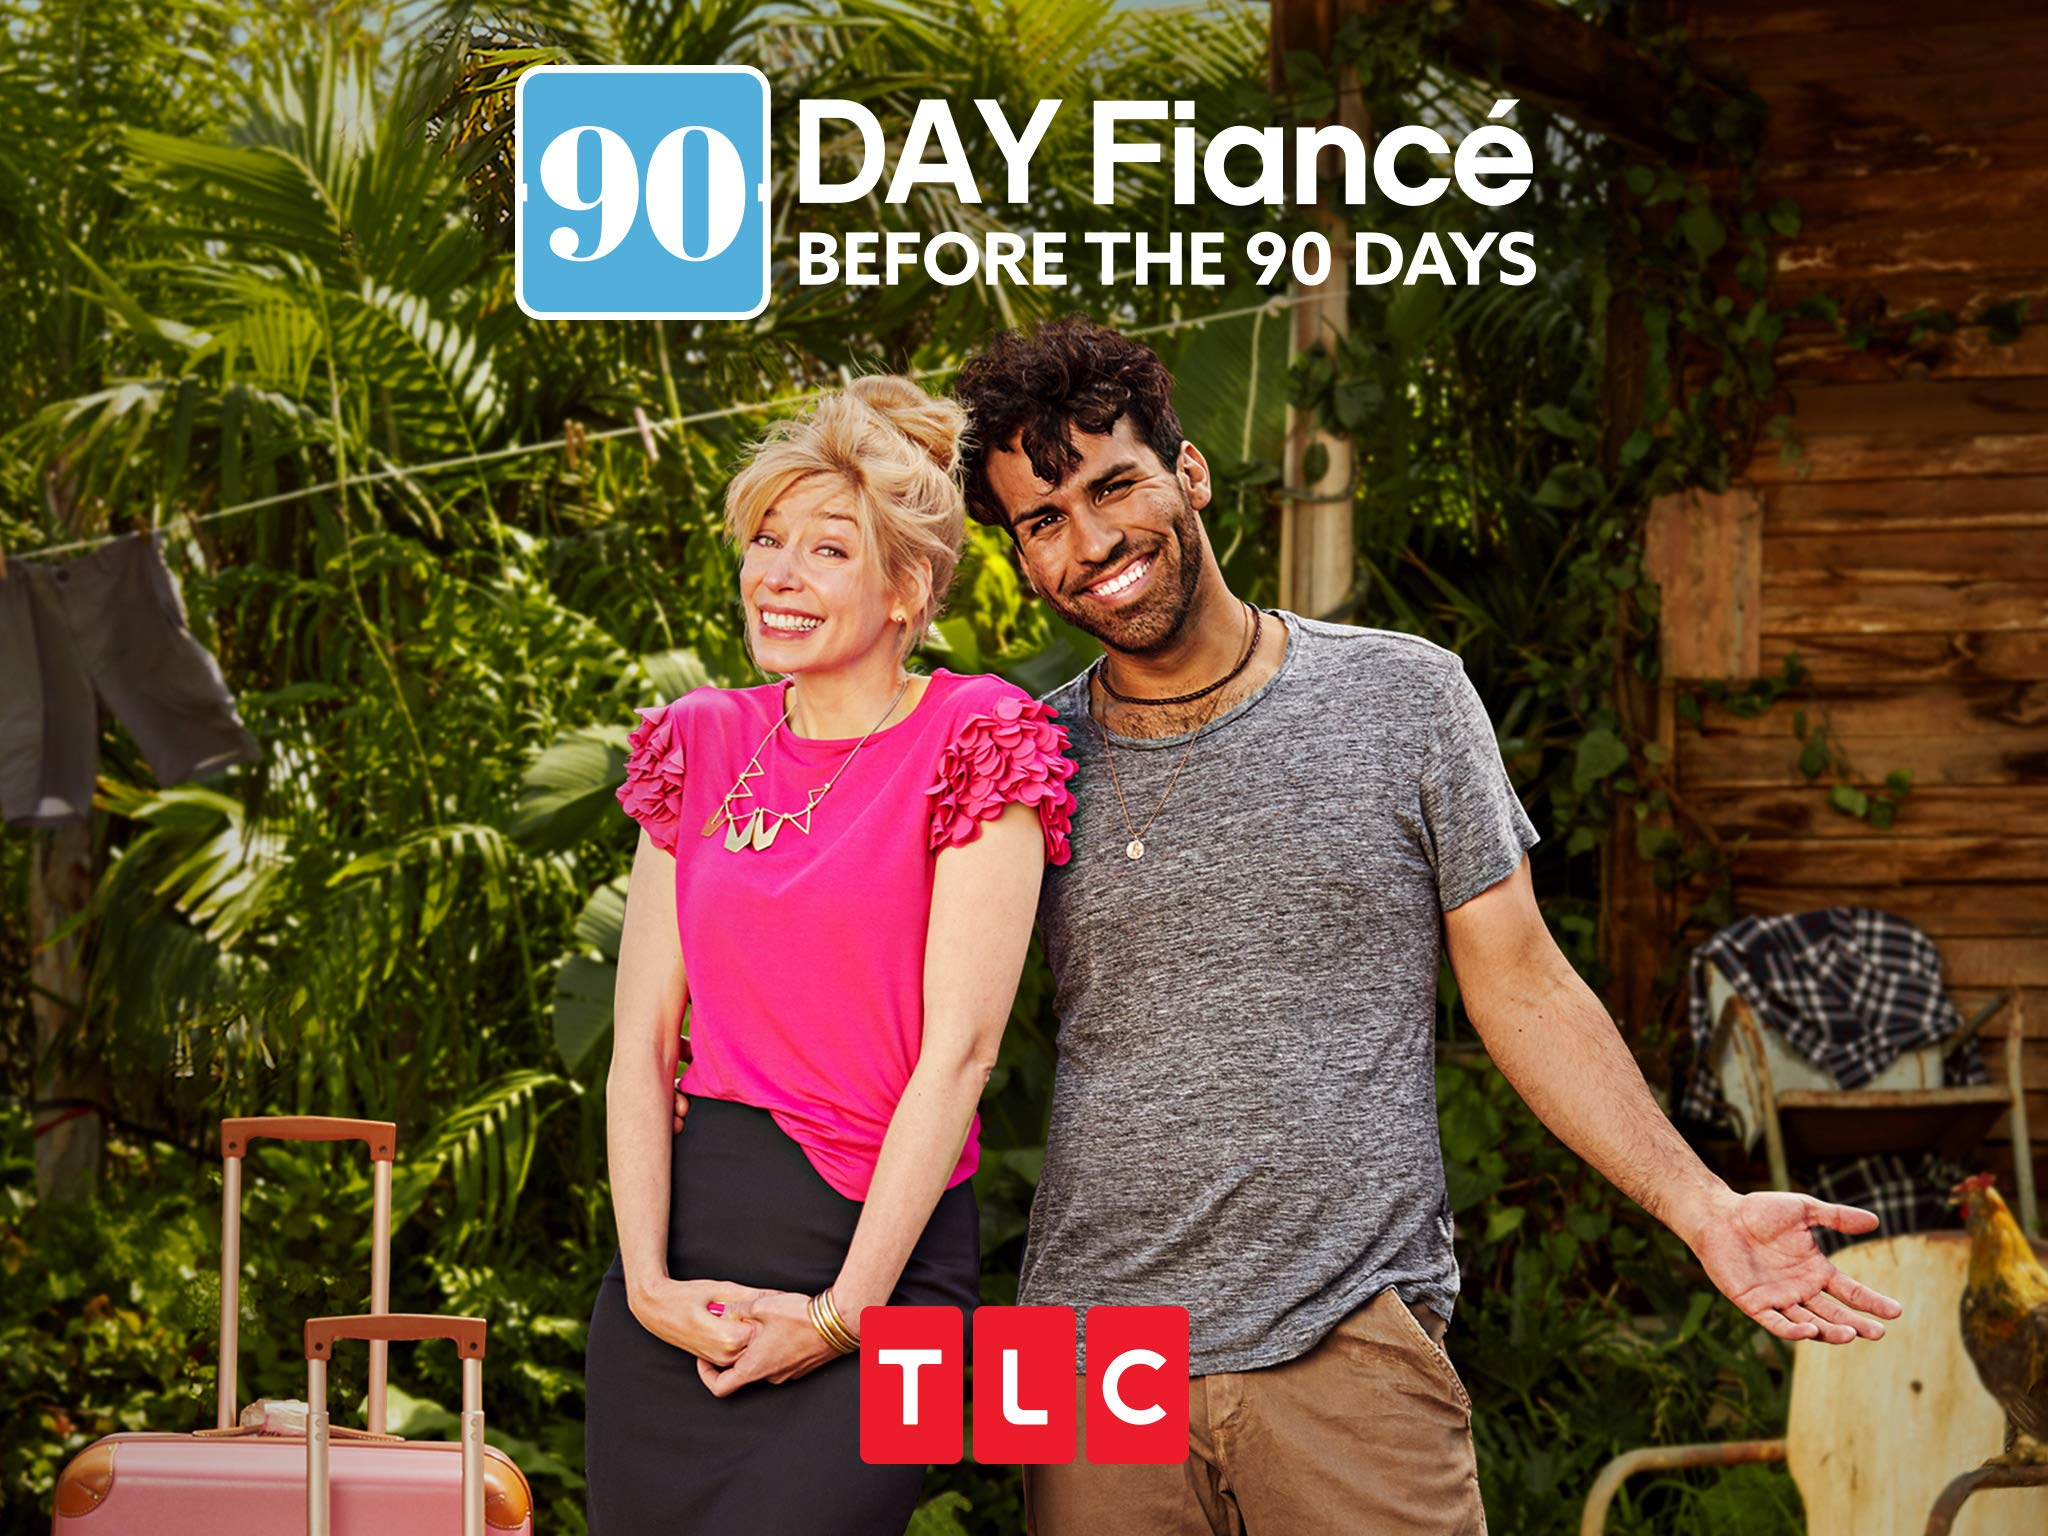 90 day fiance tell all part 2 free online